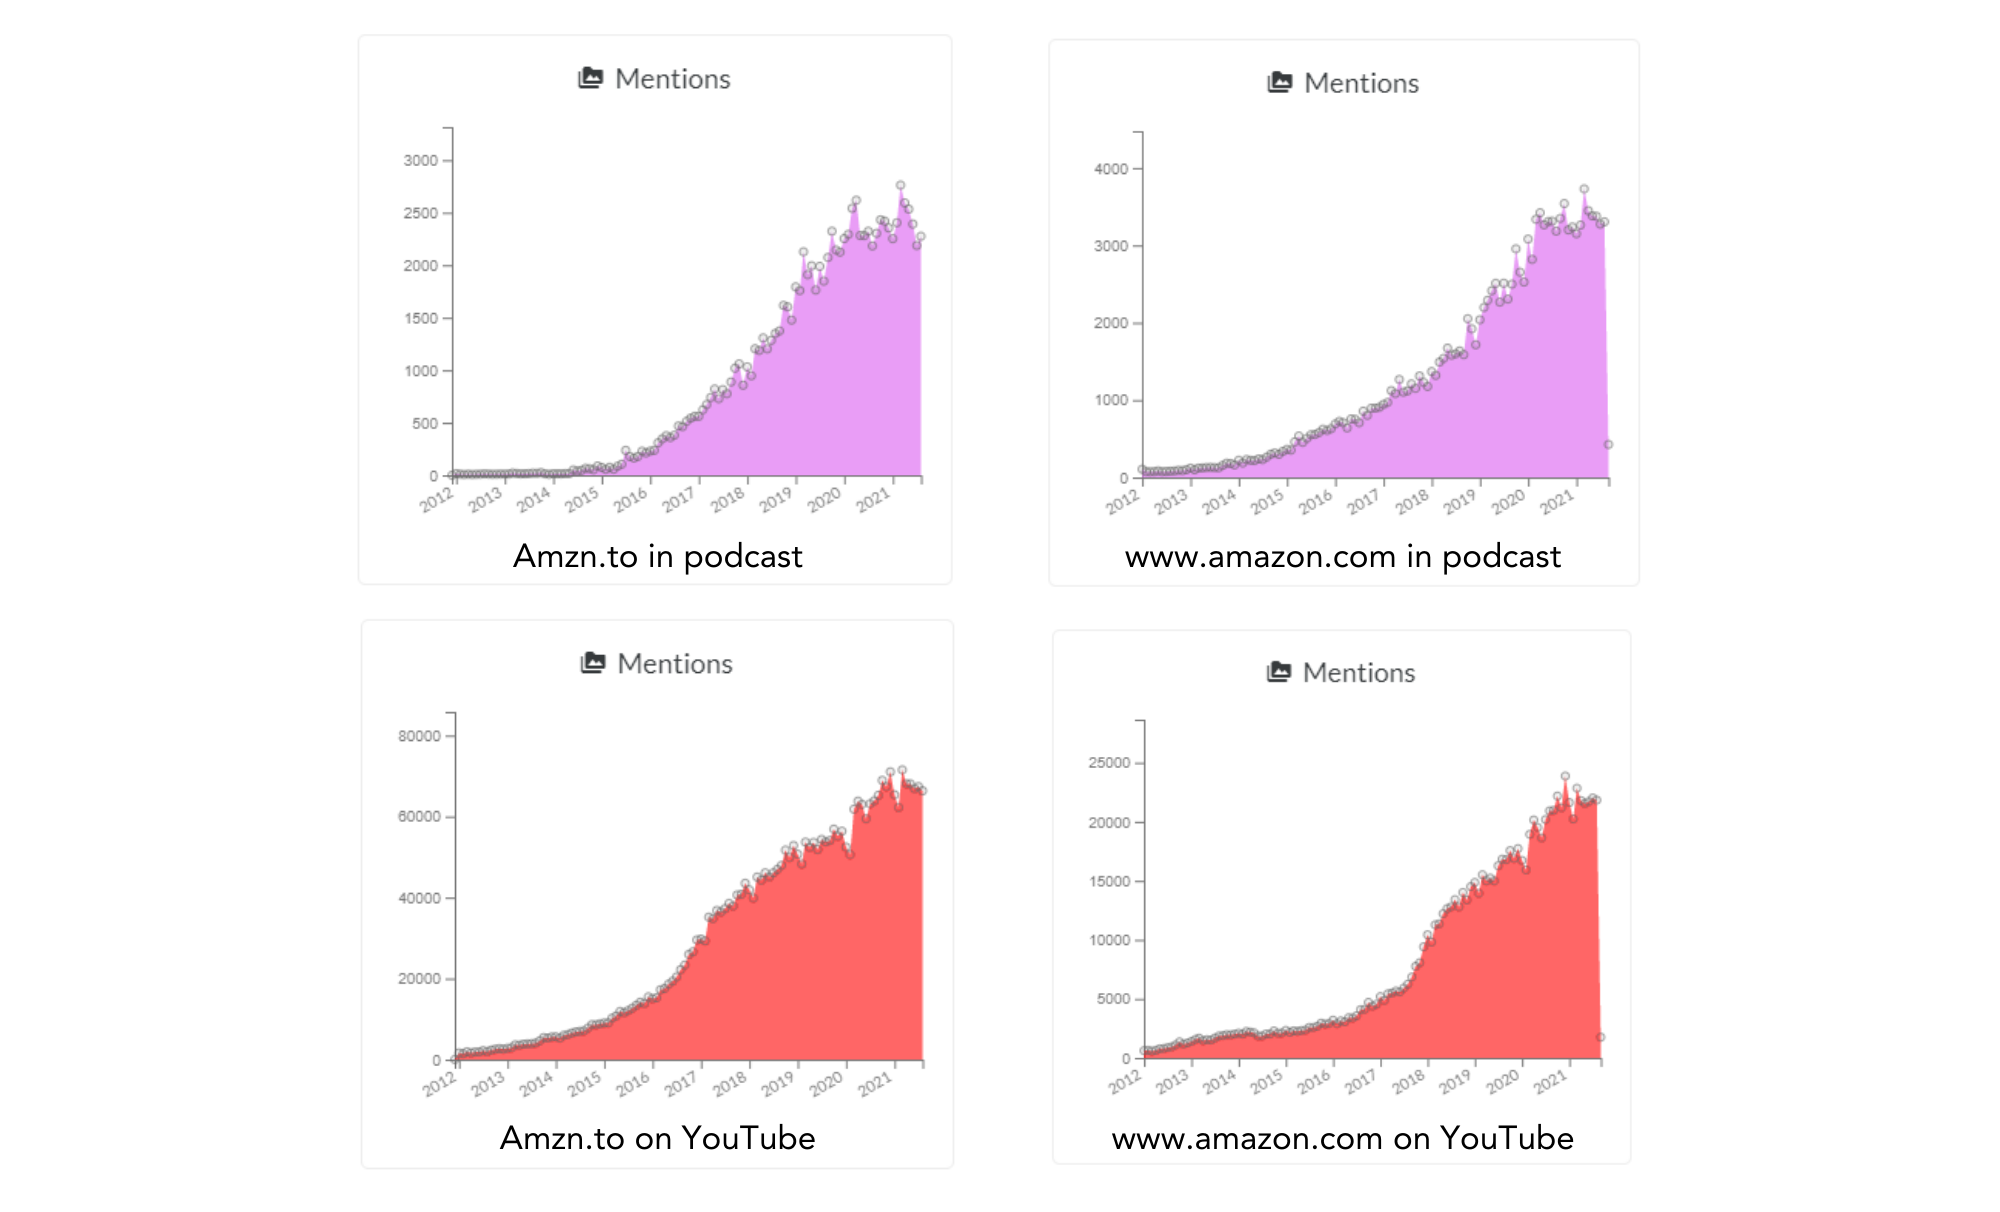 Comparing amzn.to and amazon.com in podcasts and YouTube